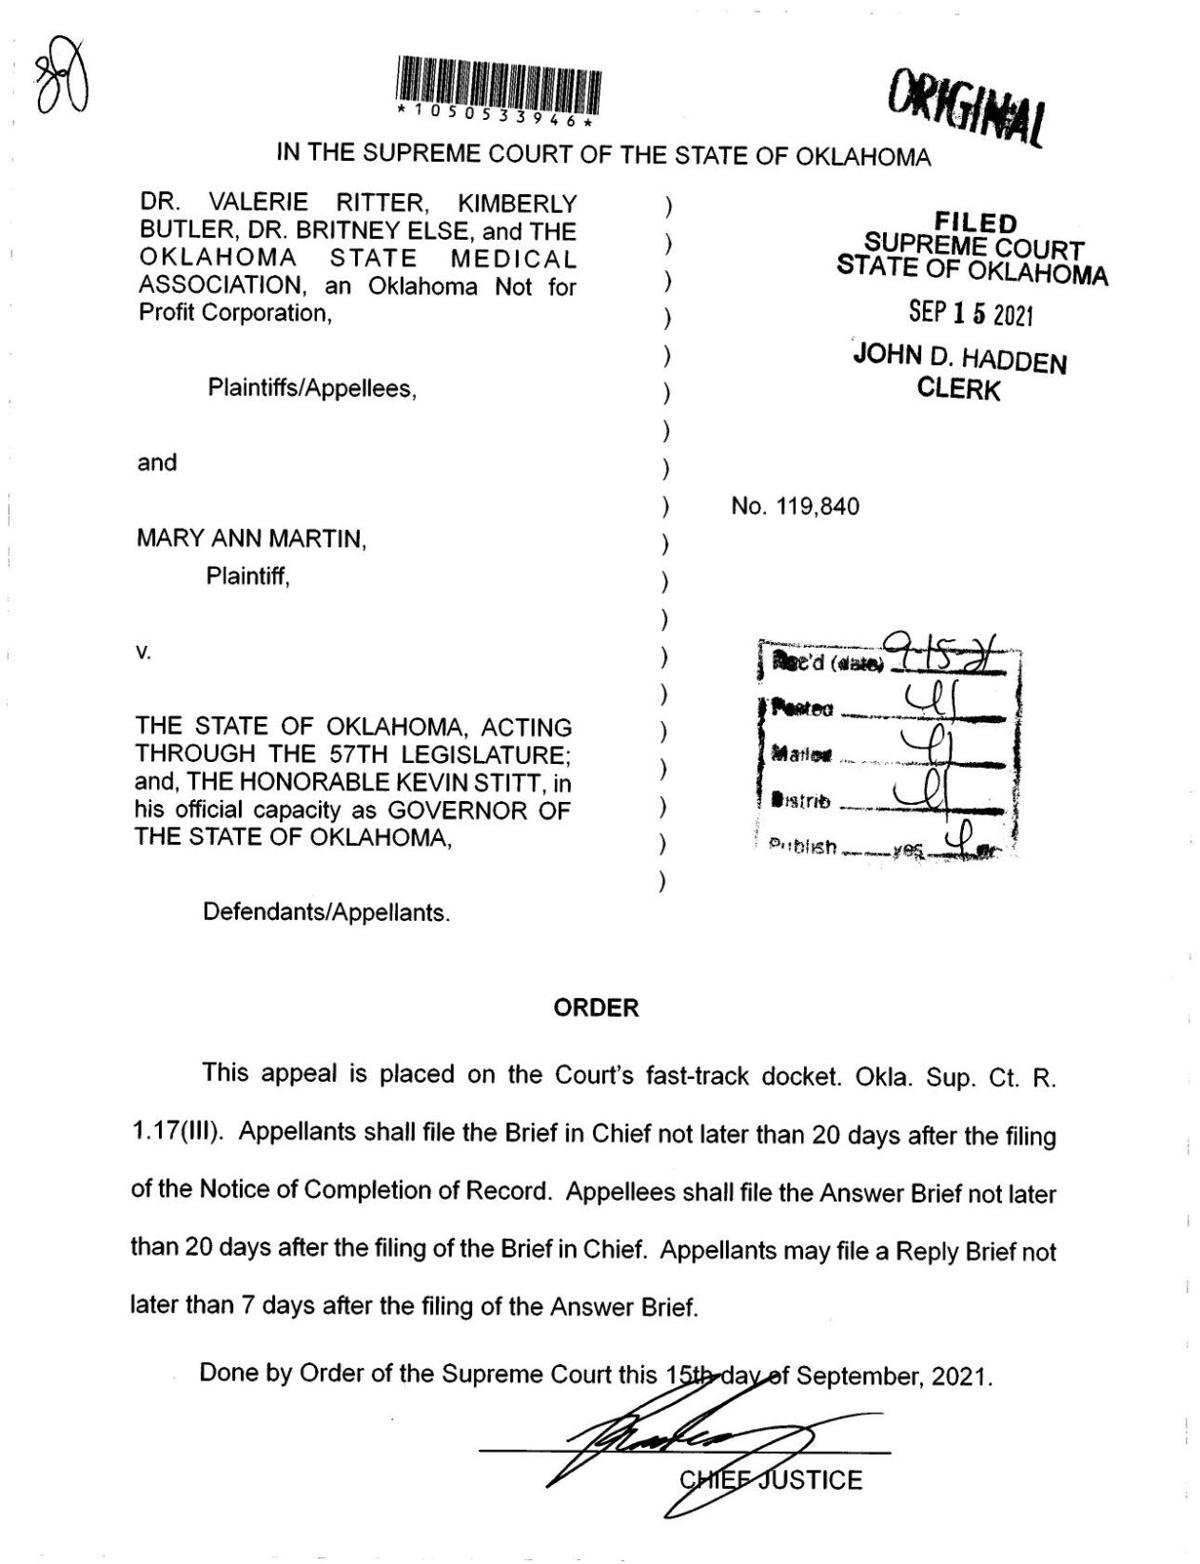 Read the Sept. 15 order from the Supreme Court of Oklahoma chief justice.